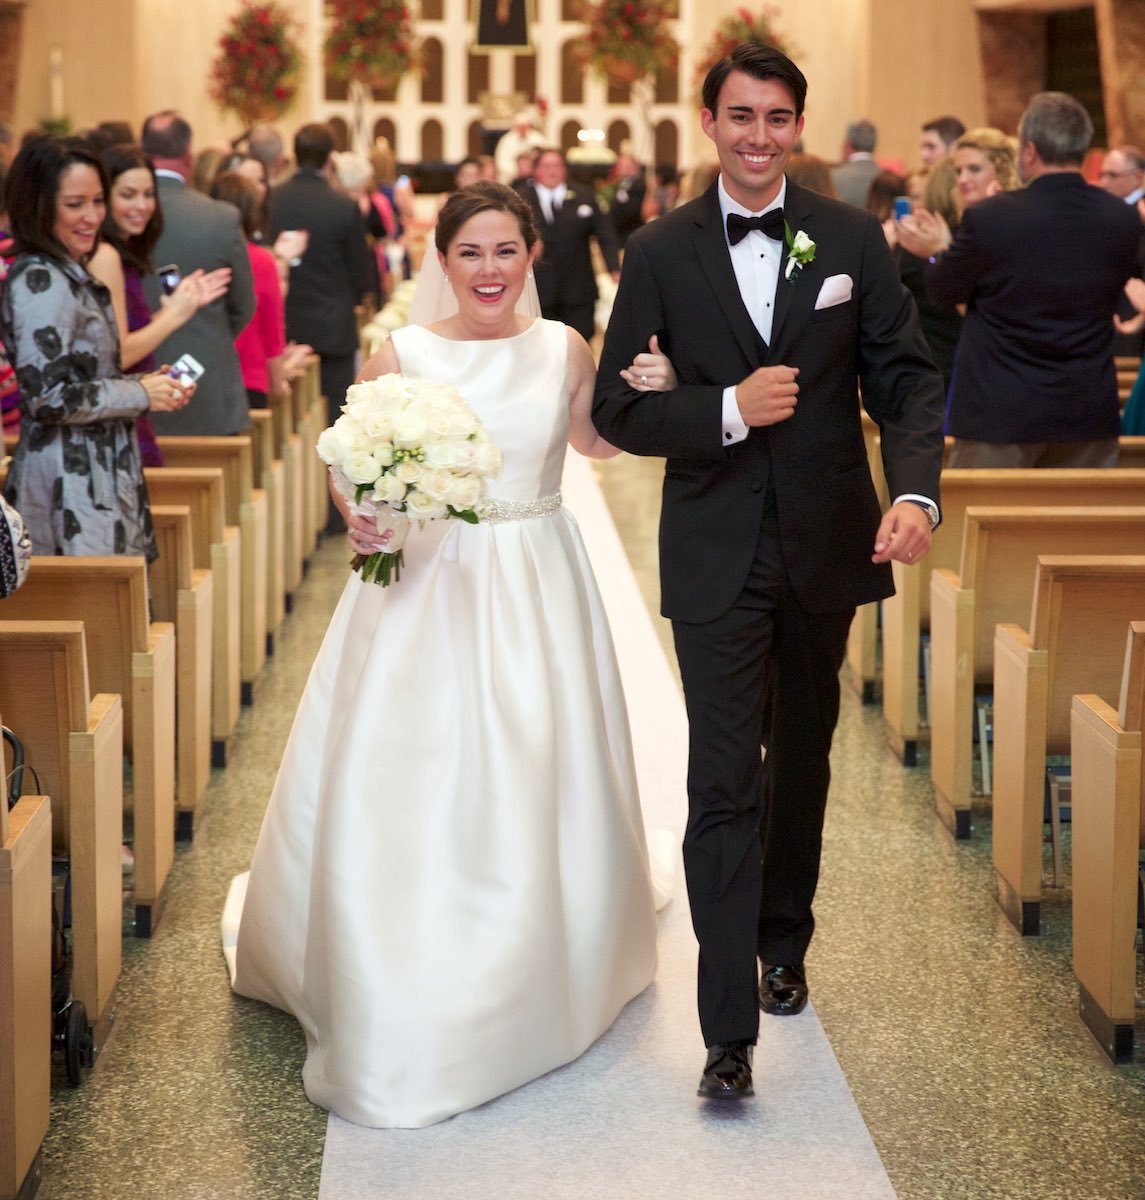 Elizabeth & Daniel walk down the aisle together at the end of the wedding ceremony at St. Rita of Cascia Shrine Chapel in Chicago. Wedding photography by Steve & Tiffany Warmowski